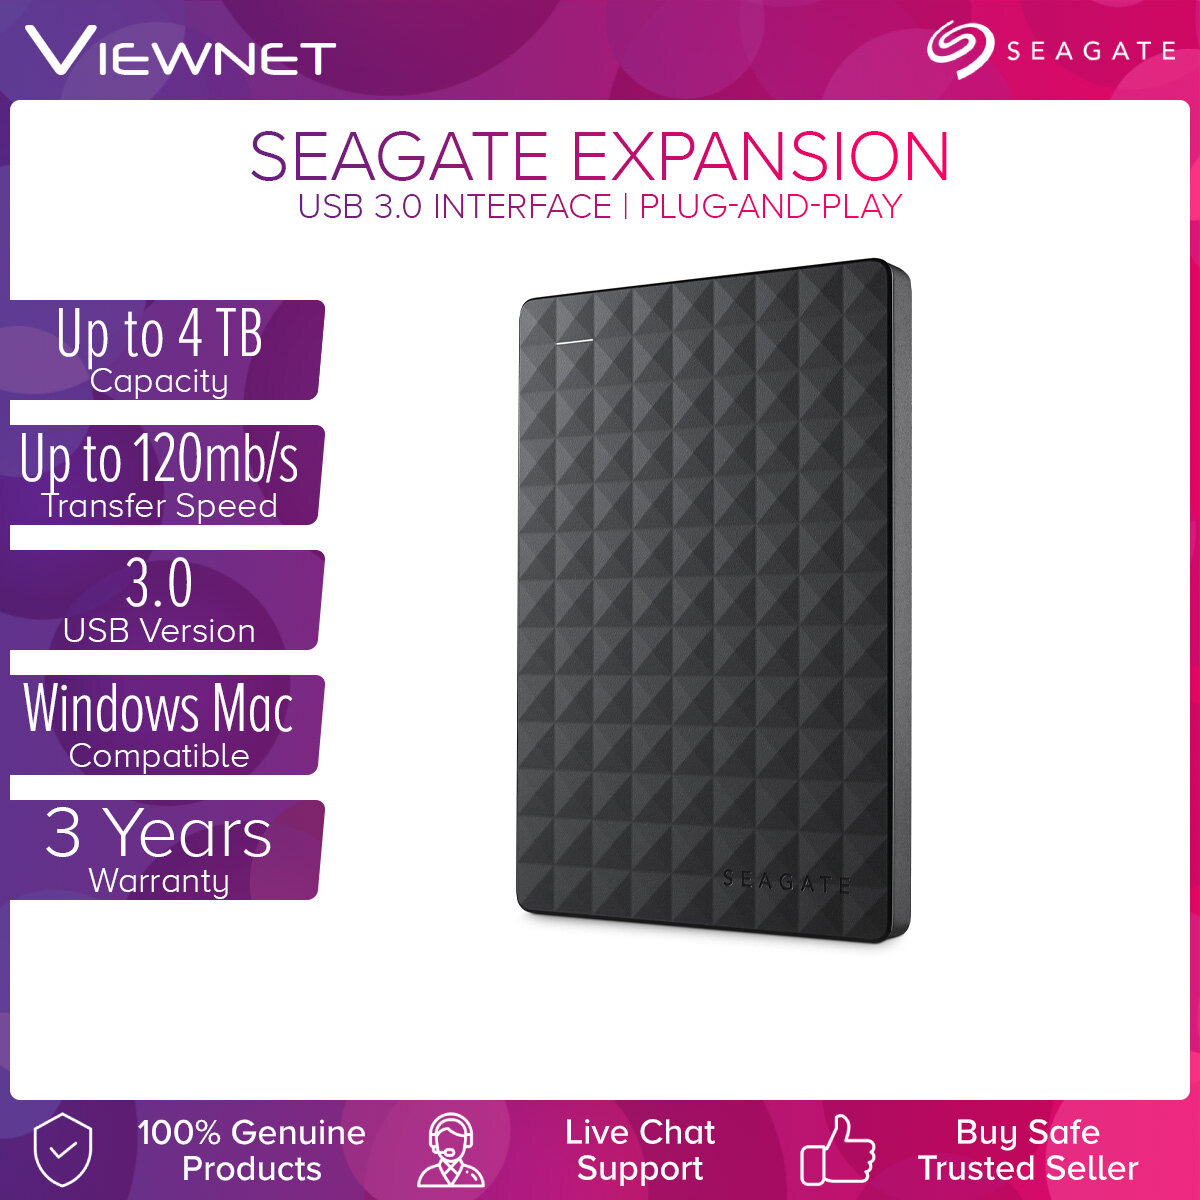 Seagate Expansion 1TB / 1.5TB / 2TB / 4TB USB 3.0 Portable External Hard Drive with Drag-and-Drop File Saving Windows Compatibility External Hard Disk